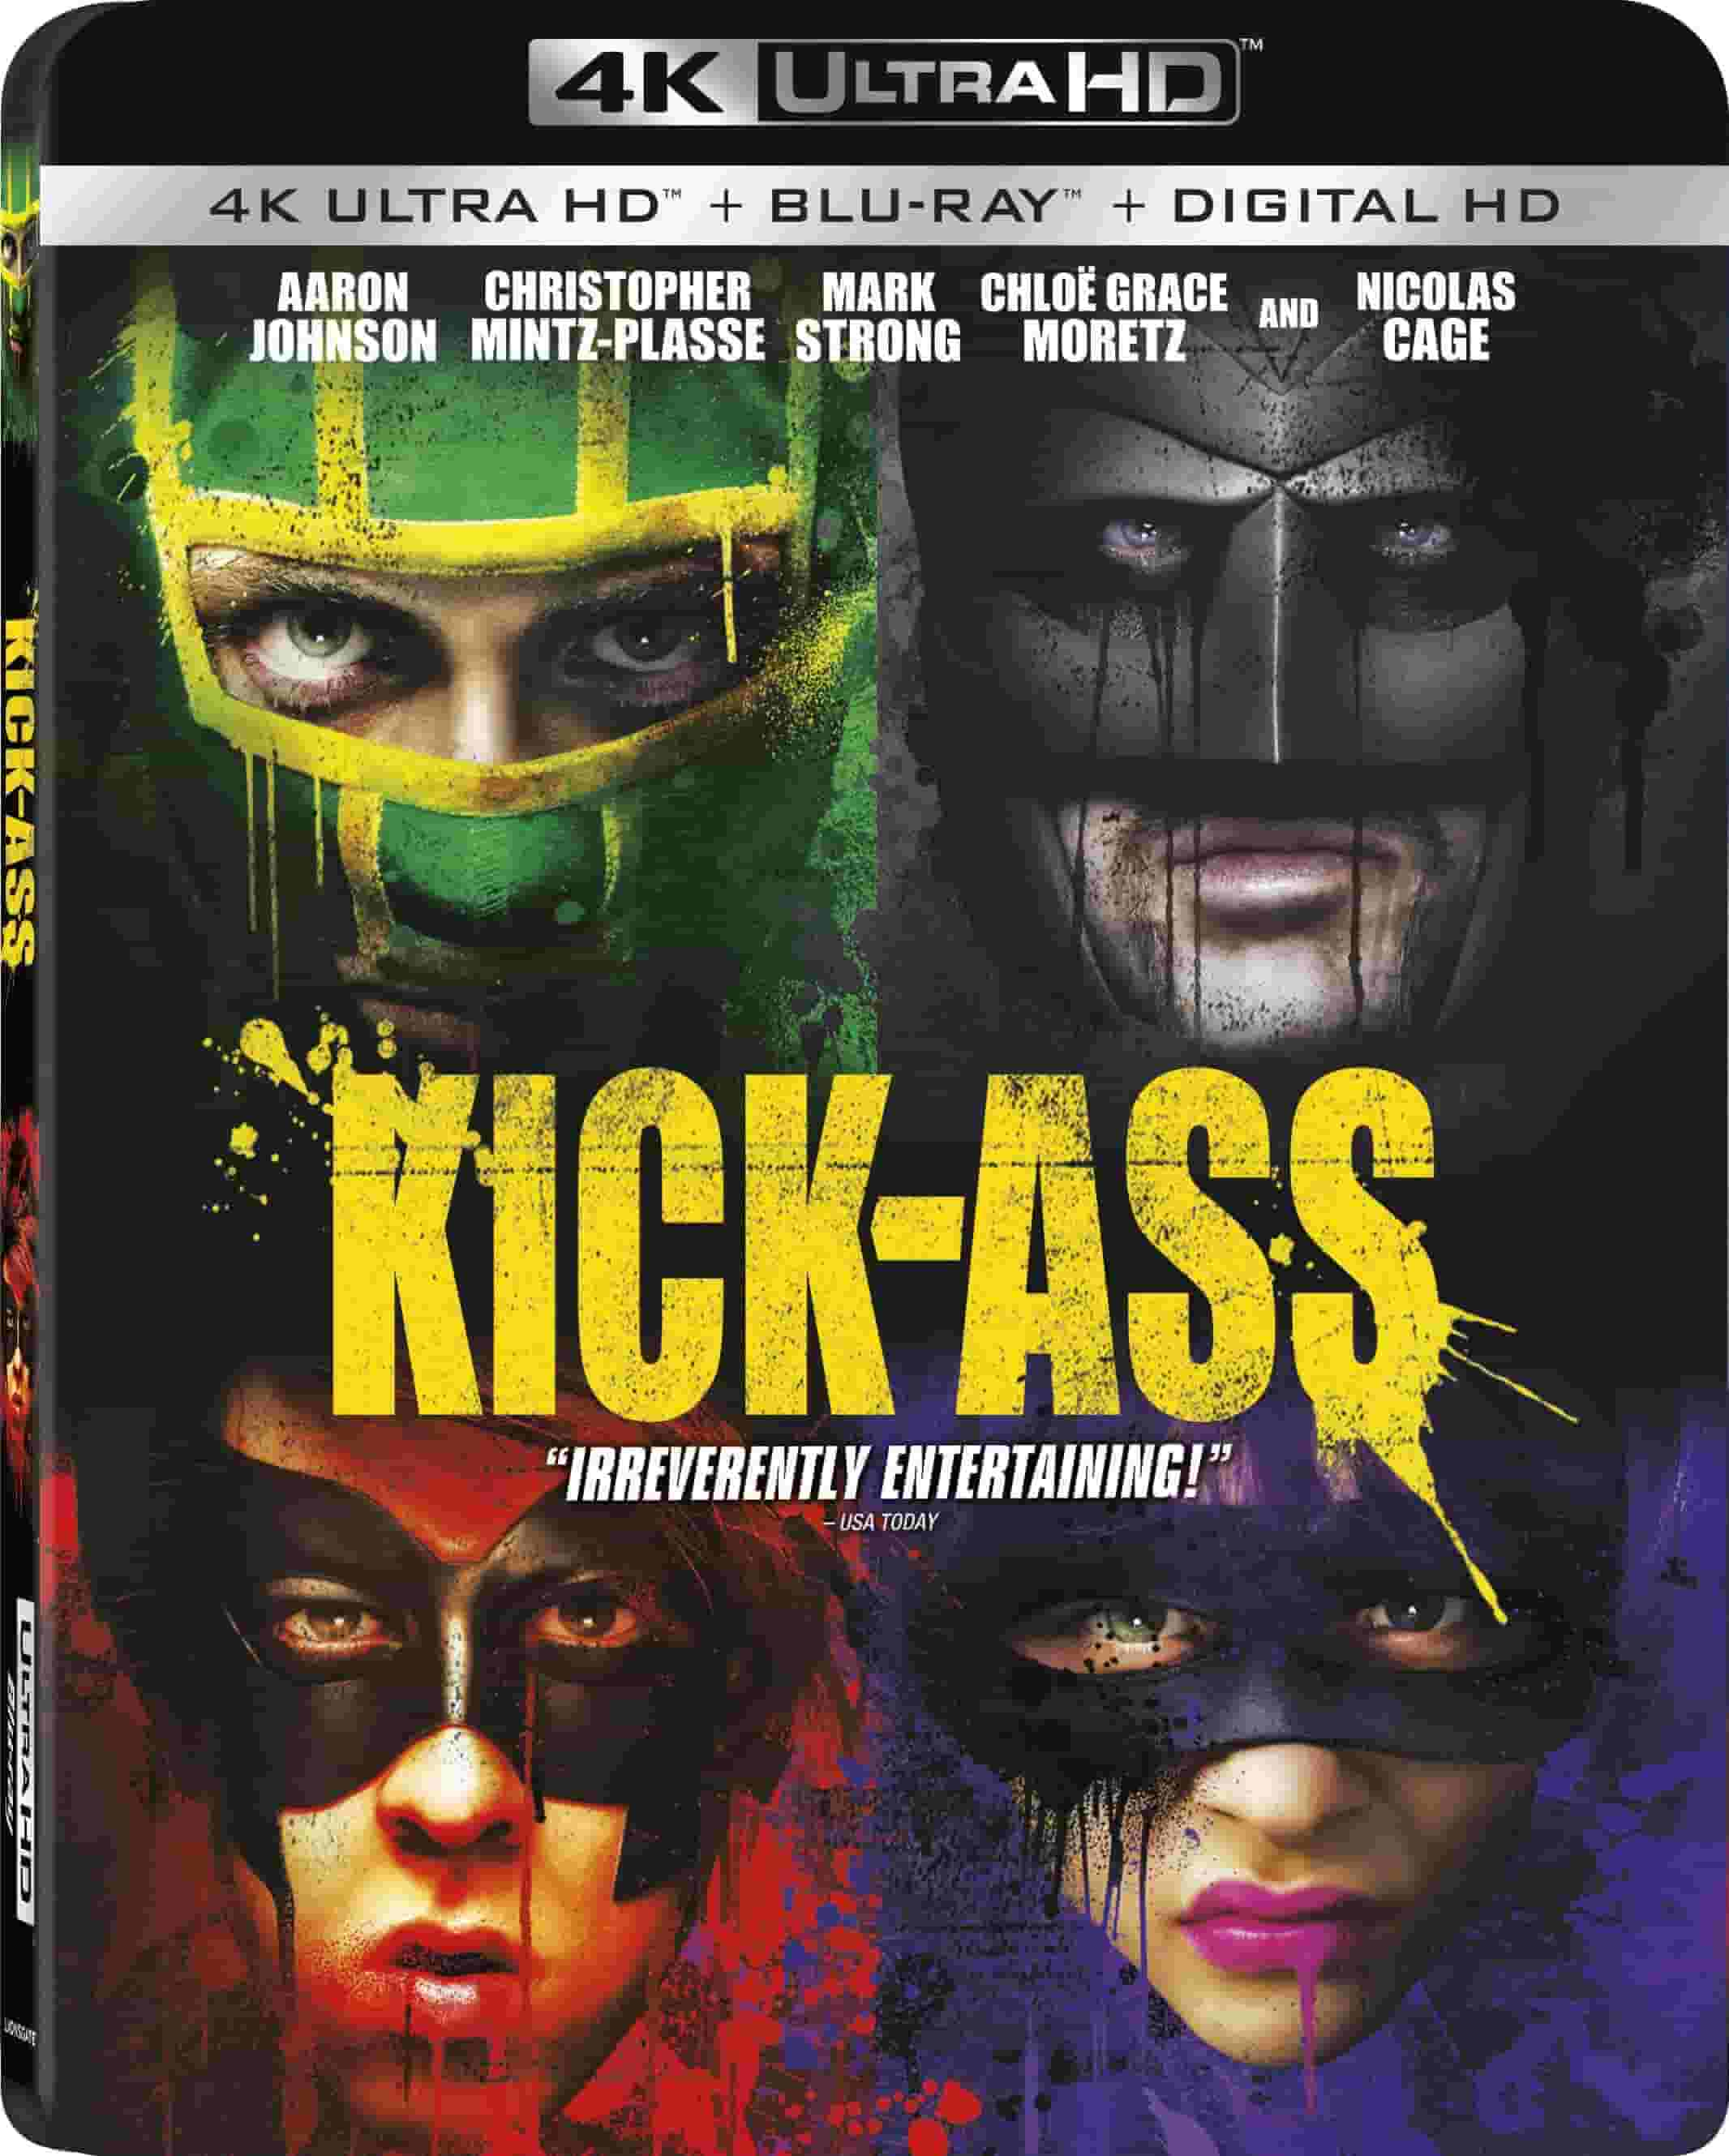 Kick-Ass 4K 2010 Ultra HD 2160p